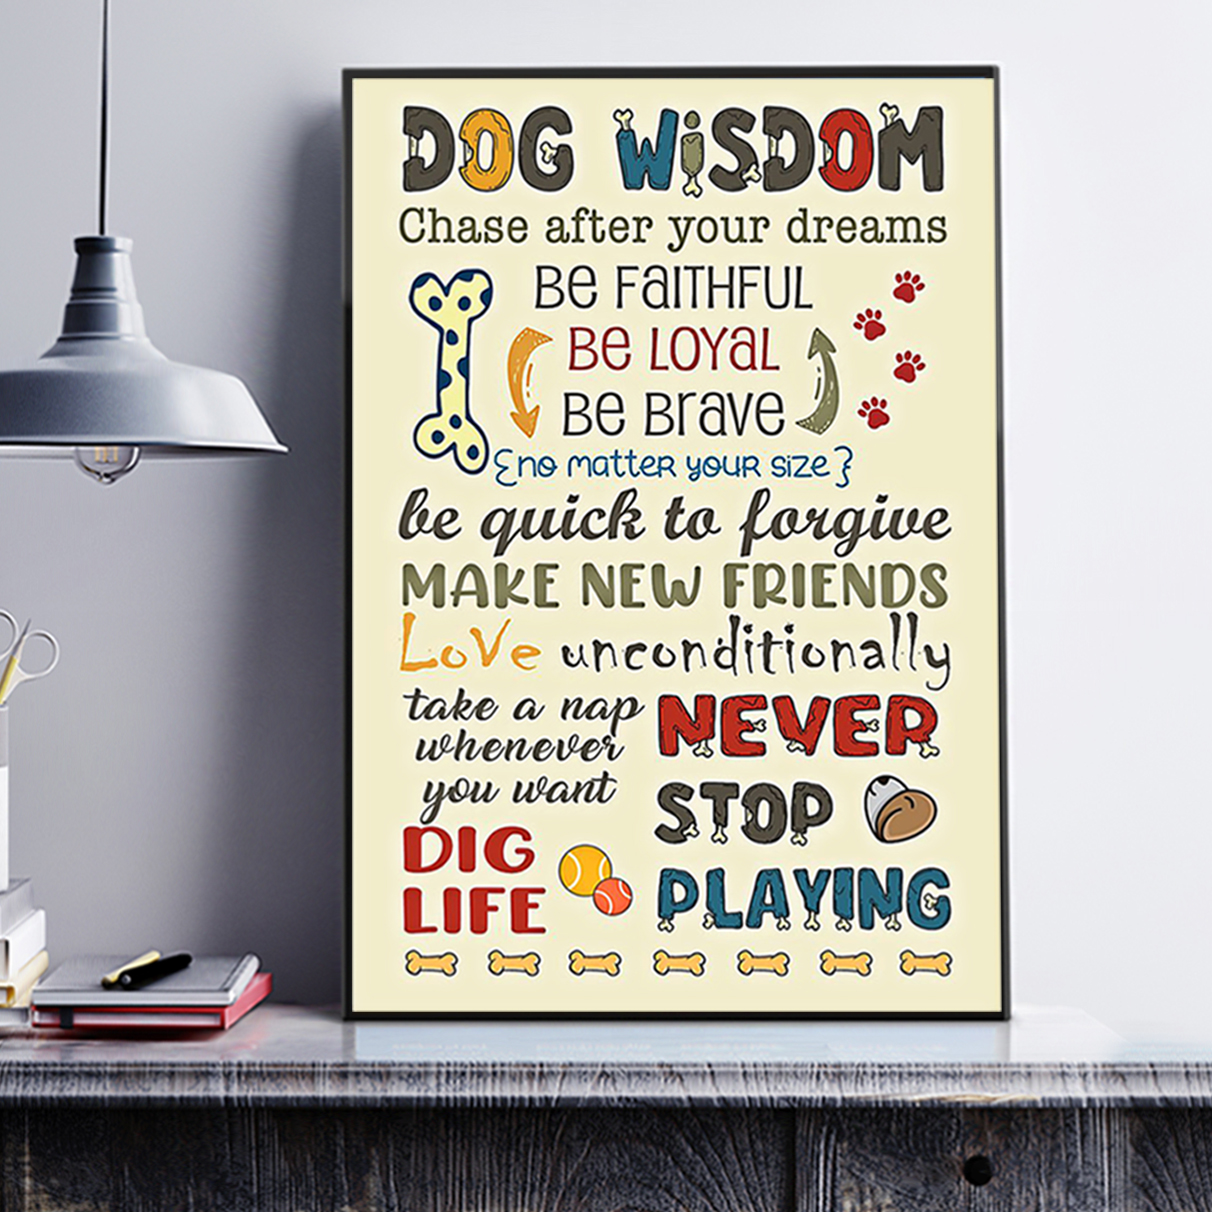 Dog wisdom chase after your dreams poster A2